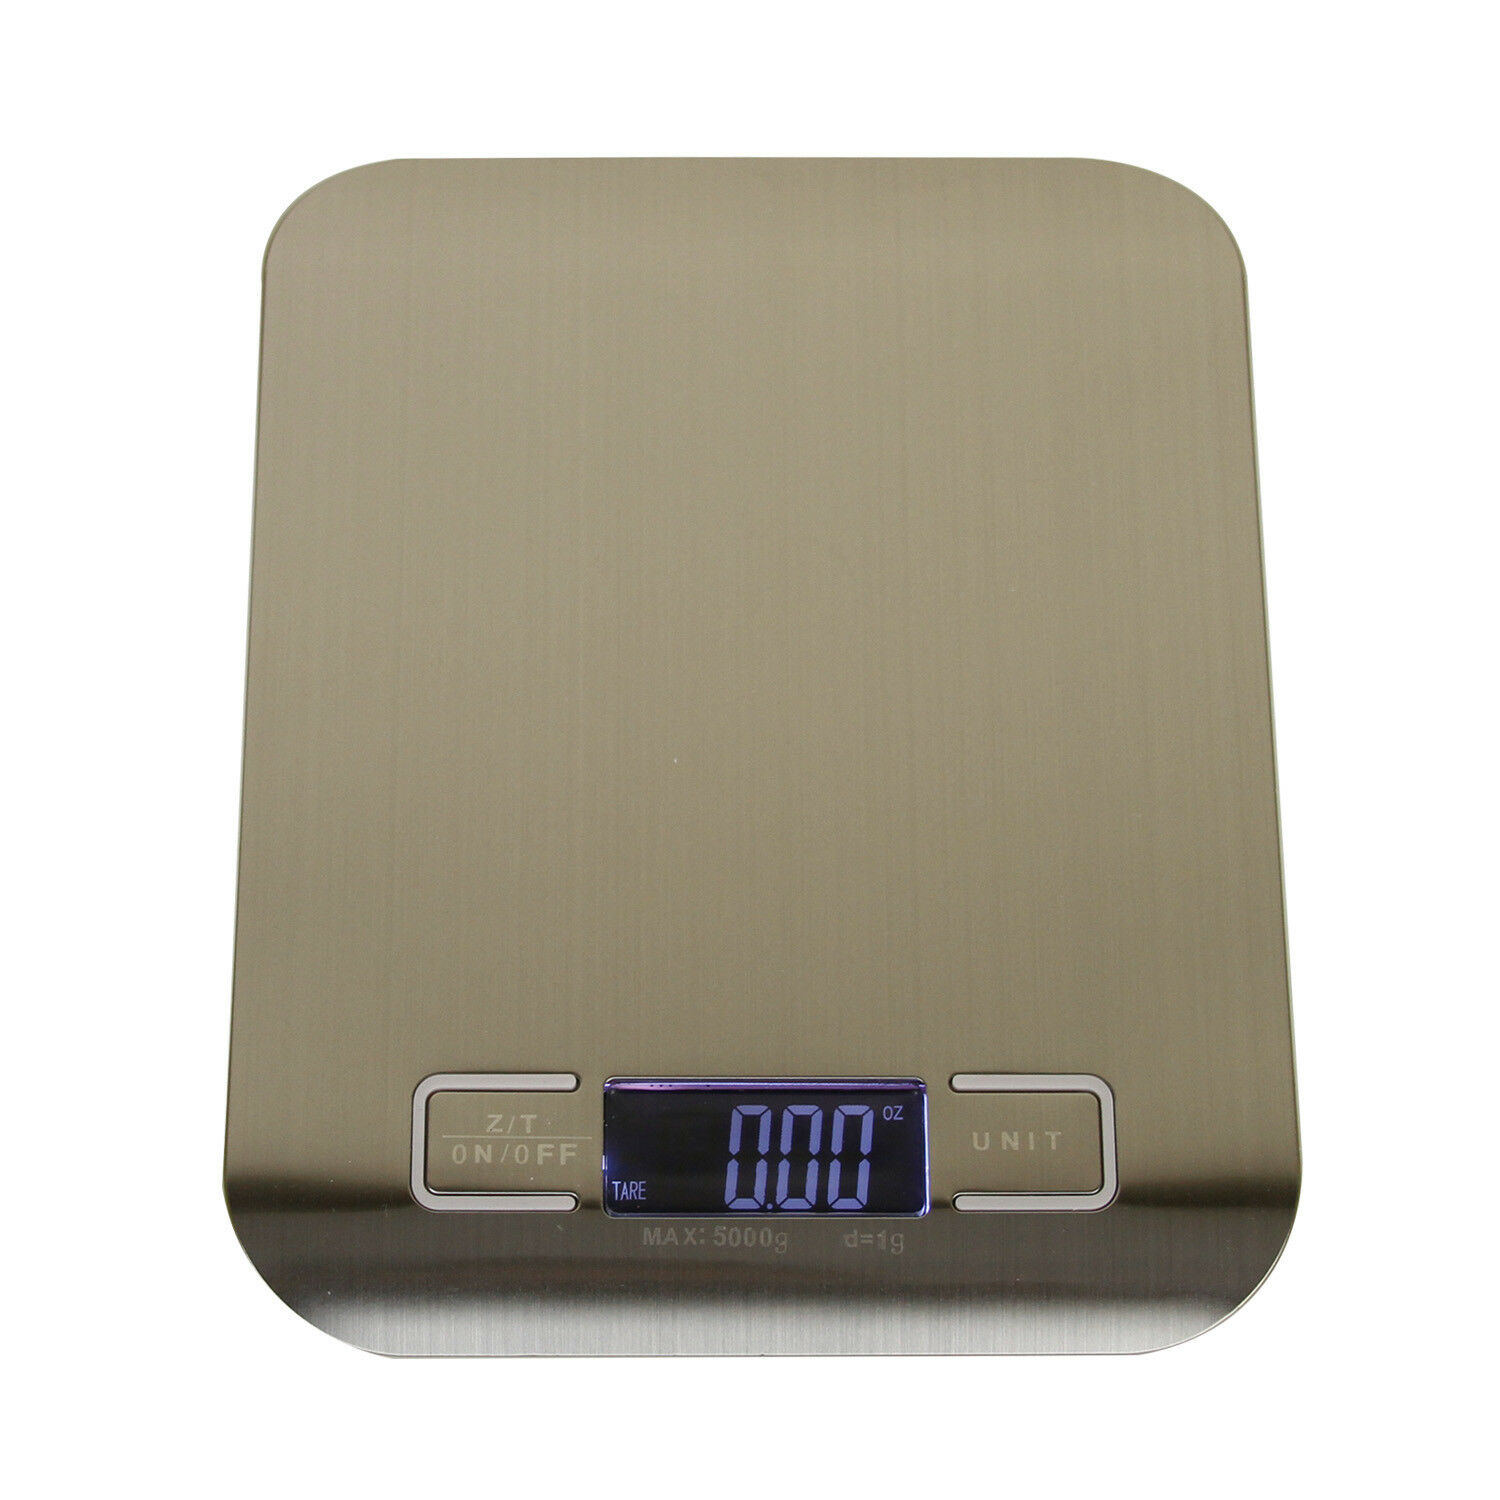 Stainless Steel Kitchen Food Scale Digital LCD Display Multi Units Measurement